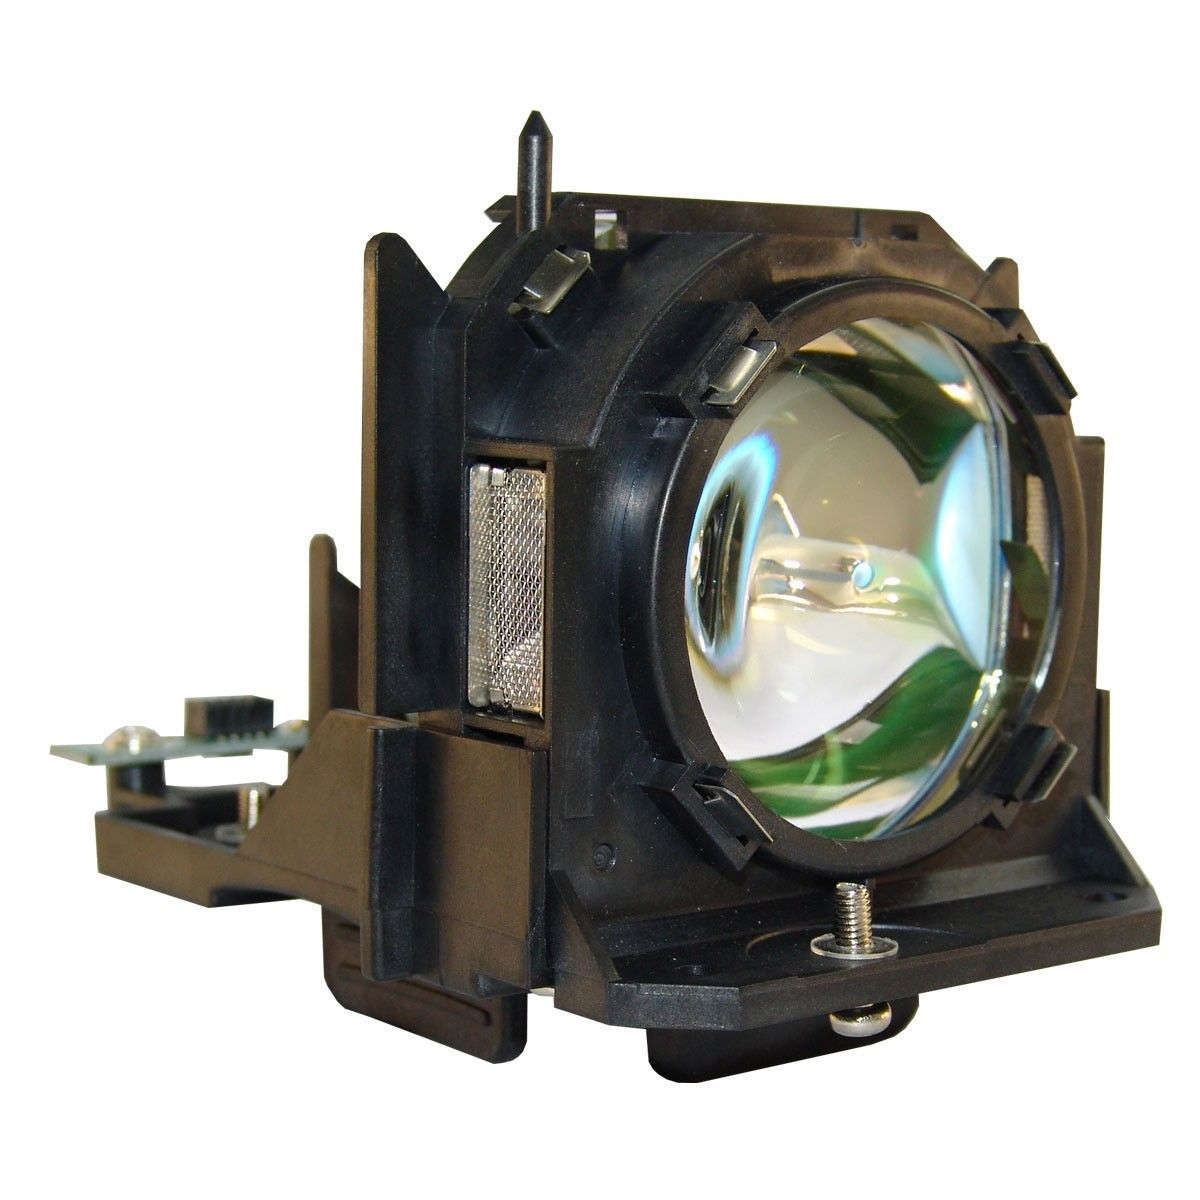 Projector Lamp Bulb ET-LAD10000 ETLAD10000 LAD10000 for PANASONIC PT-D10000 PT-DW10000 PT-DW10000E with housing projector lamp bulb et la701 etla701 for panasonic pt l711nt pt l711x pt l501e with housing